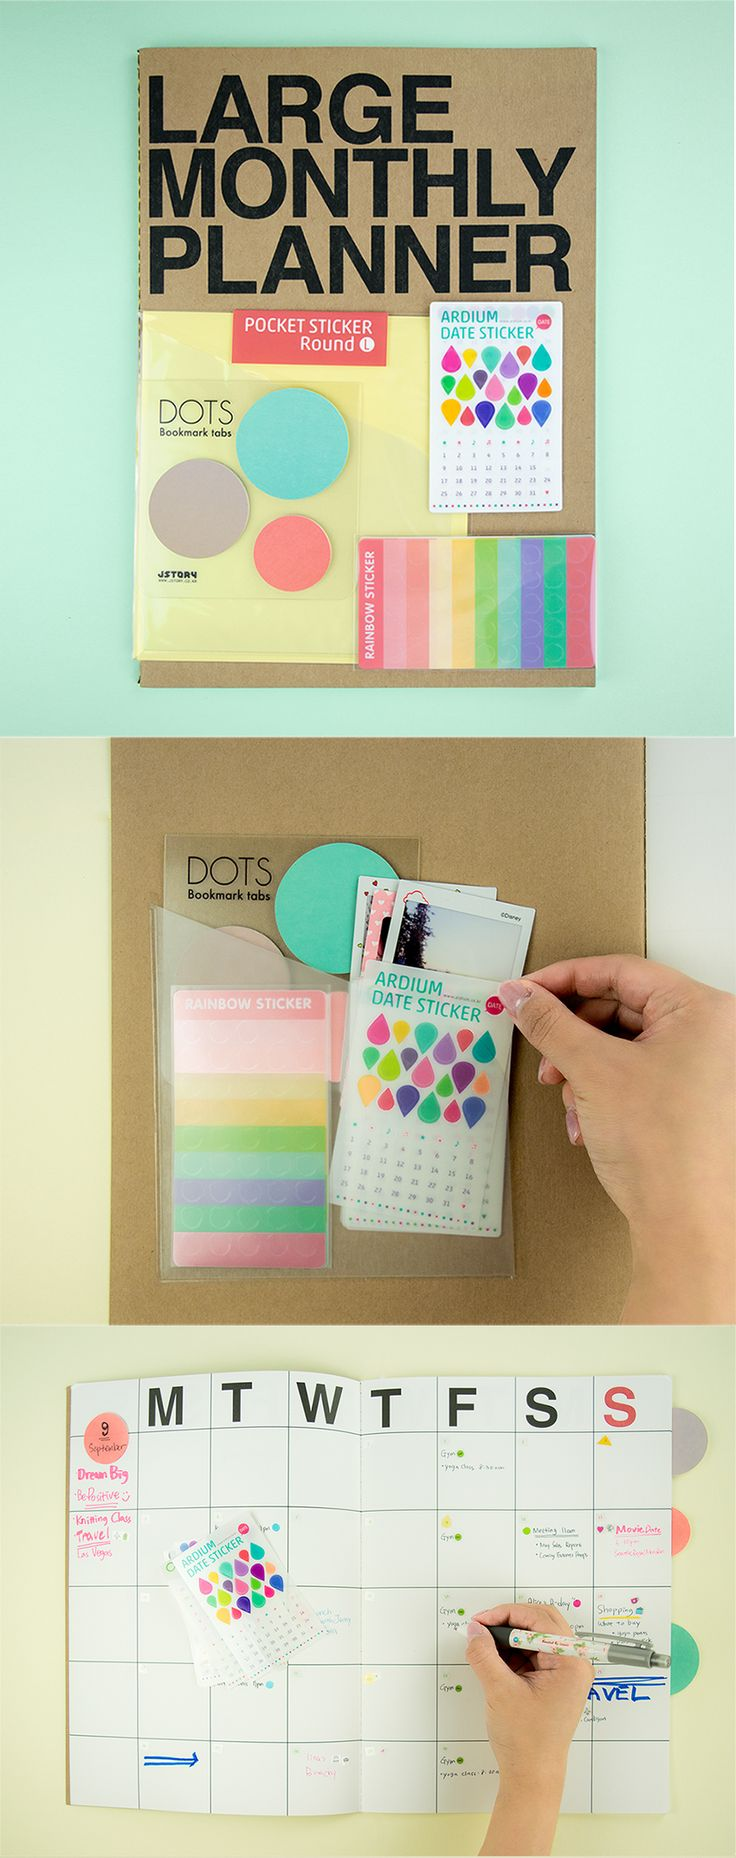 Set yourself up for successful planning with this Large Scheduler Kit. It includes all our most popular products in one convenient, lovable collection! It includes the Large Monthly Planner, Large Round Pocket Sticker, Rainbow & Date Sticker sets, and the Shape Index Sticky Note. With these must-have planner accessories, you can plan and decorate to your heart's content. Write reminders, to-dos, and grocery lists, too! Check it out and become the pro planner addict you were always meant to…